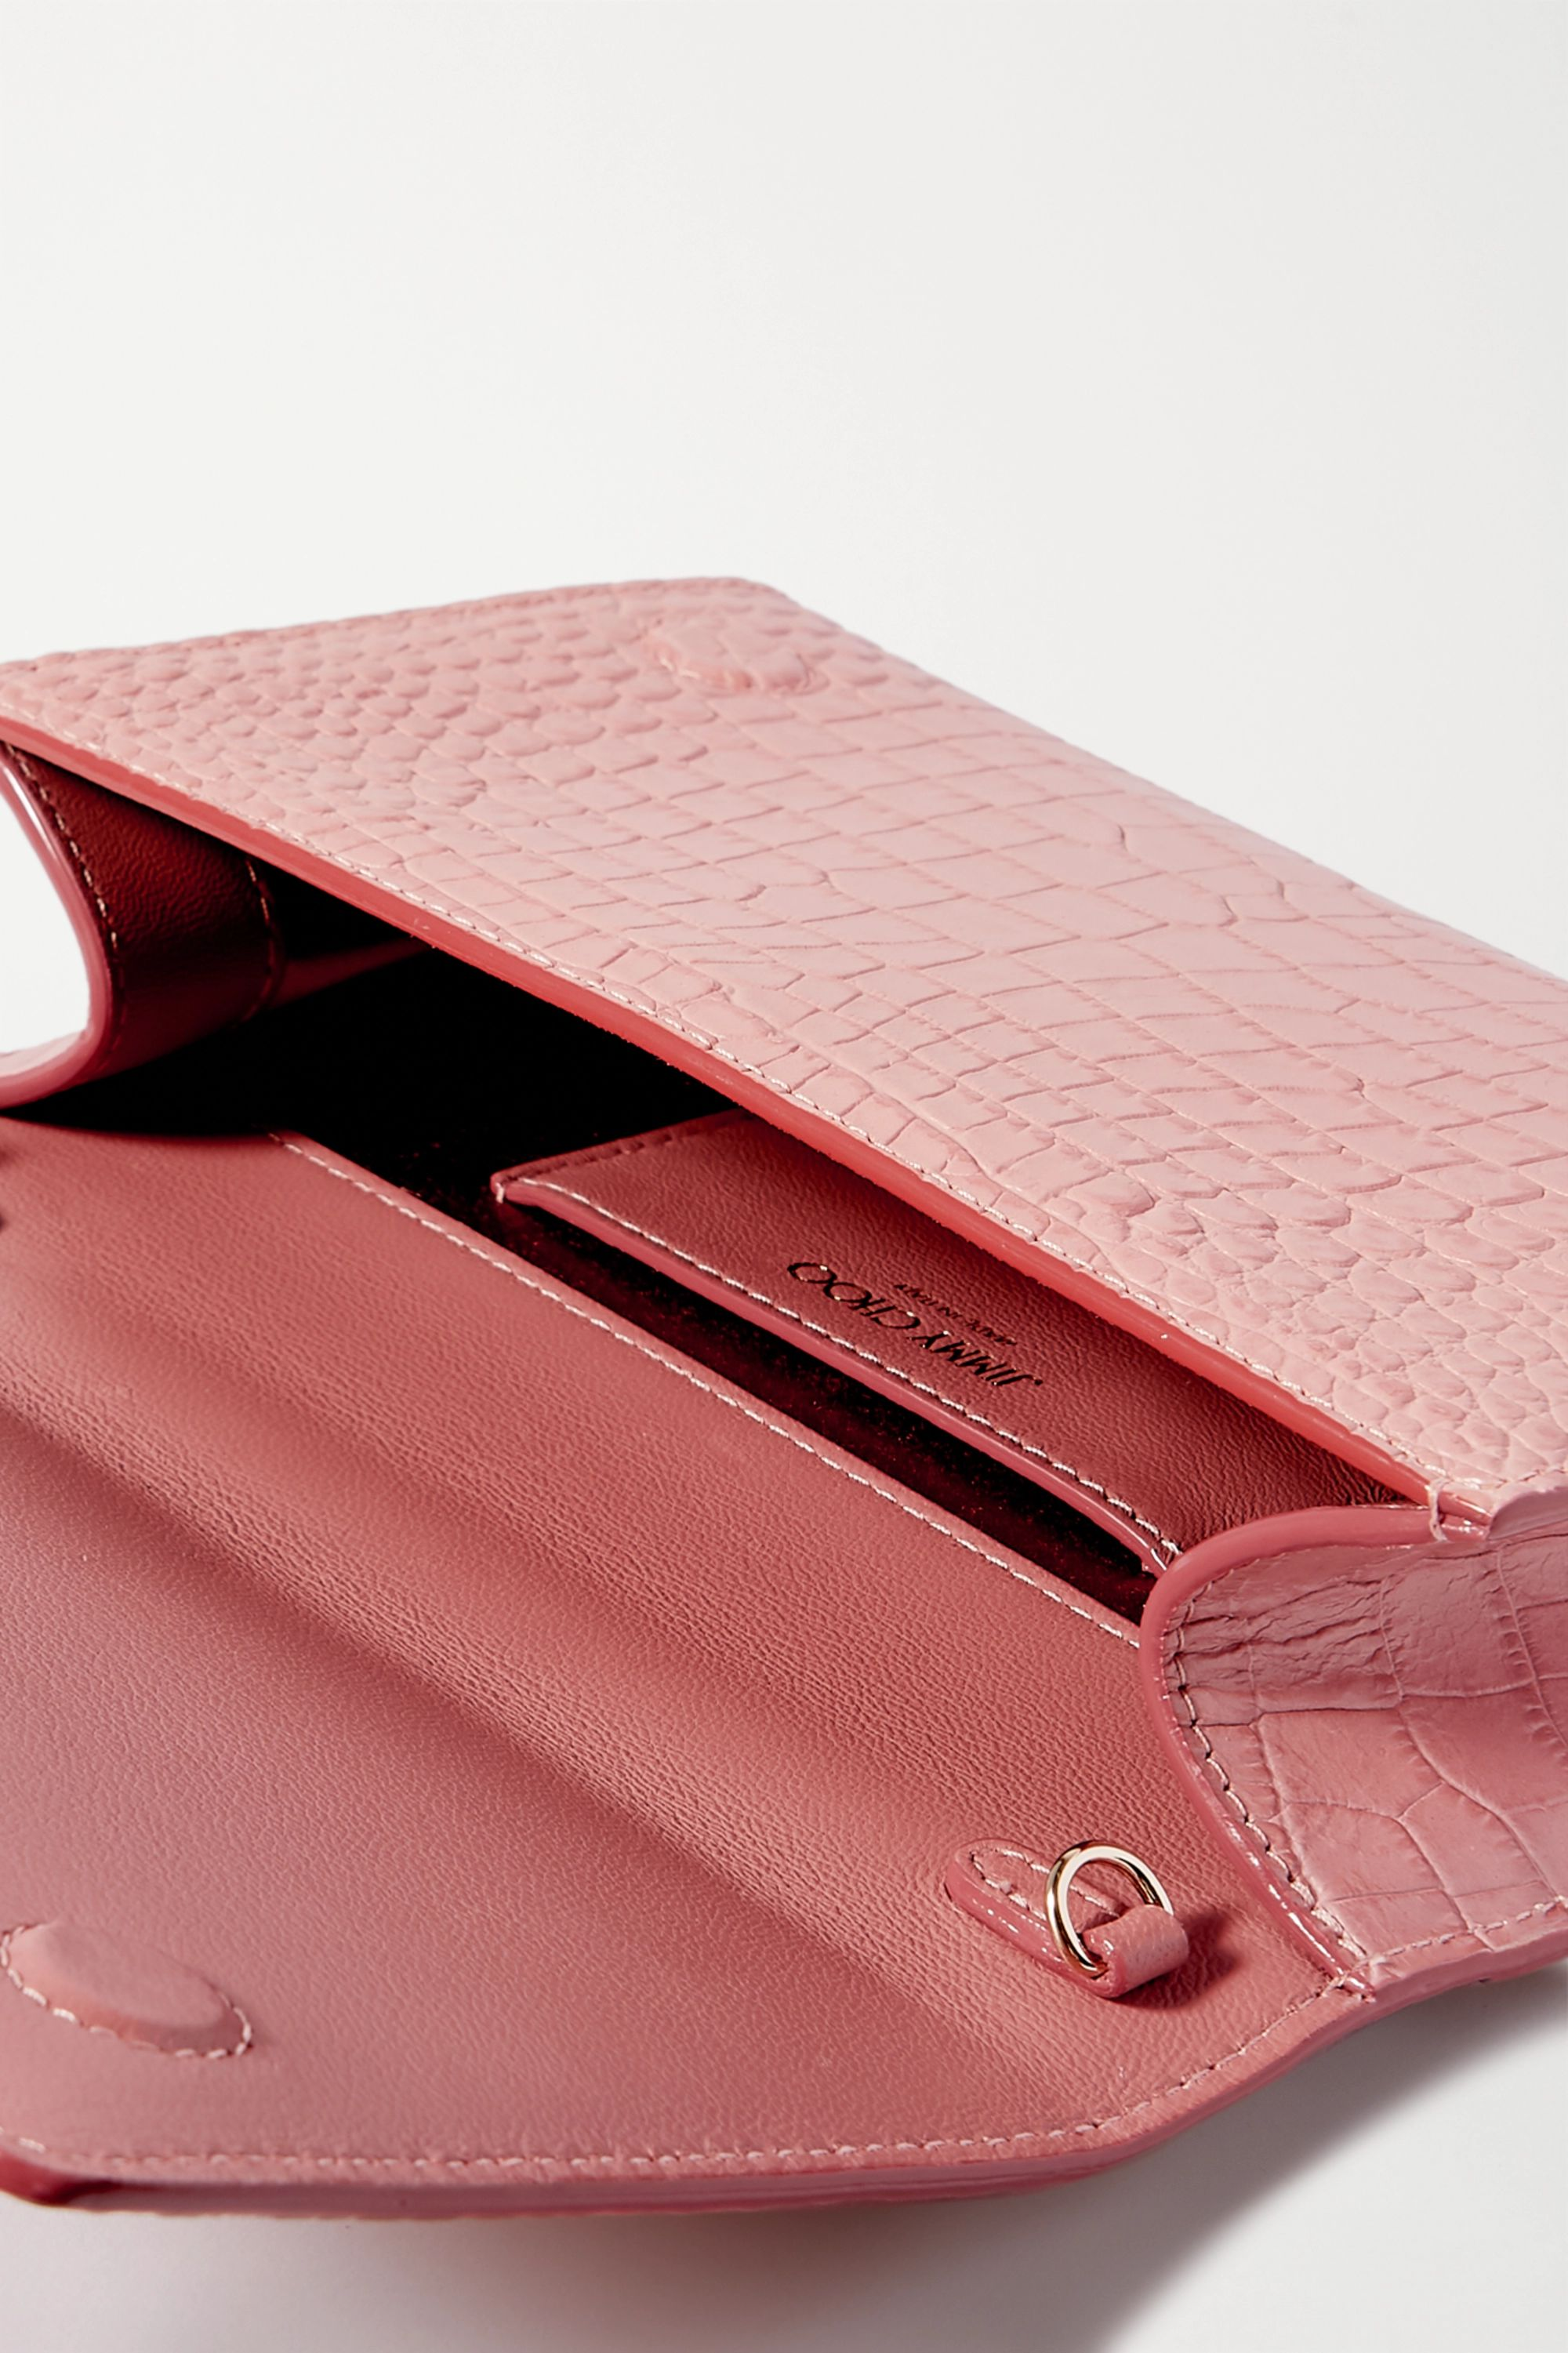 Jimmy Choo Varenne croc-effect leather clutch